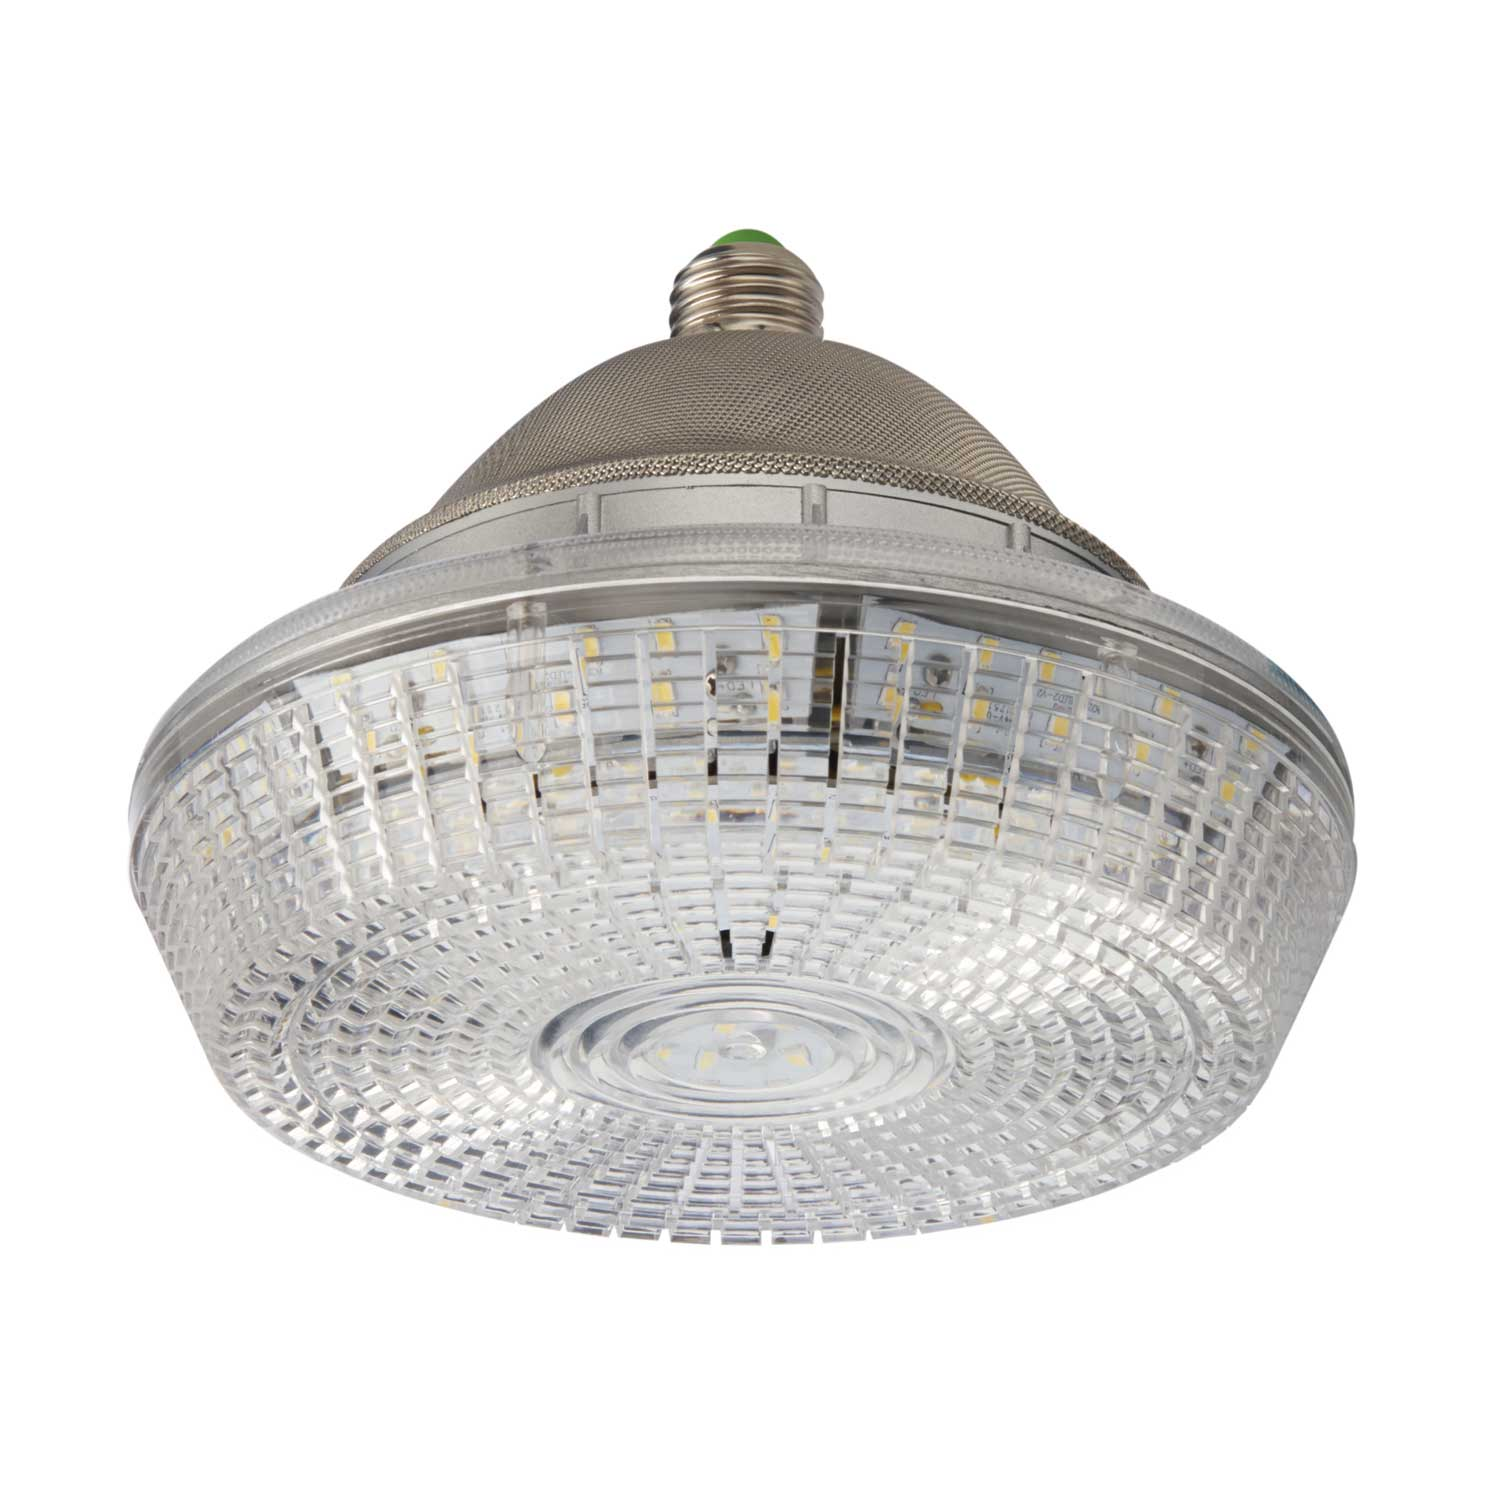 Light Efficient Design Led-8035E57 Bulb 60W Parking Garage